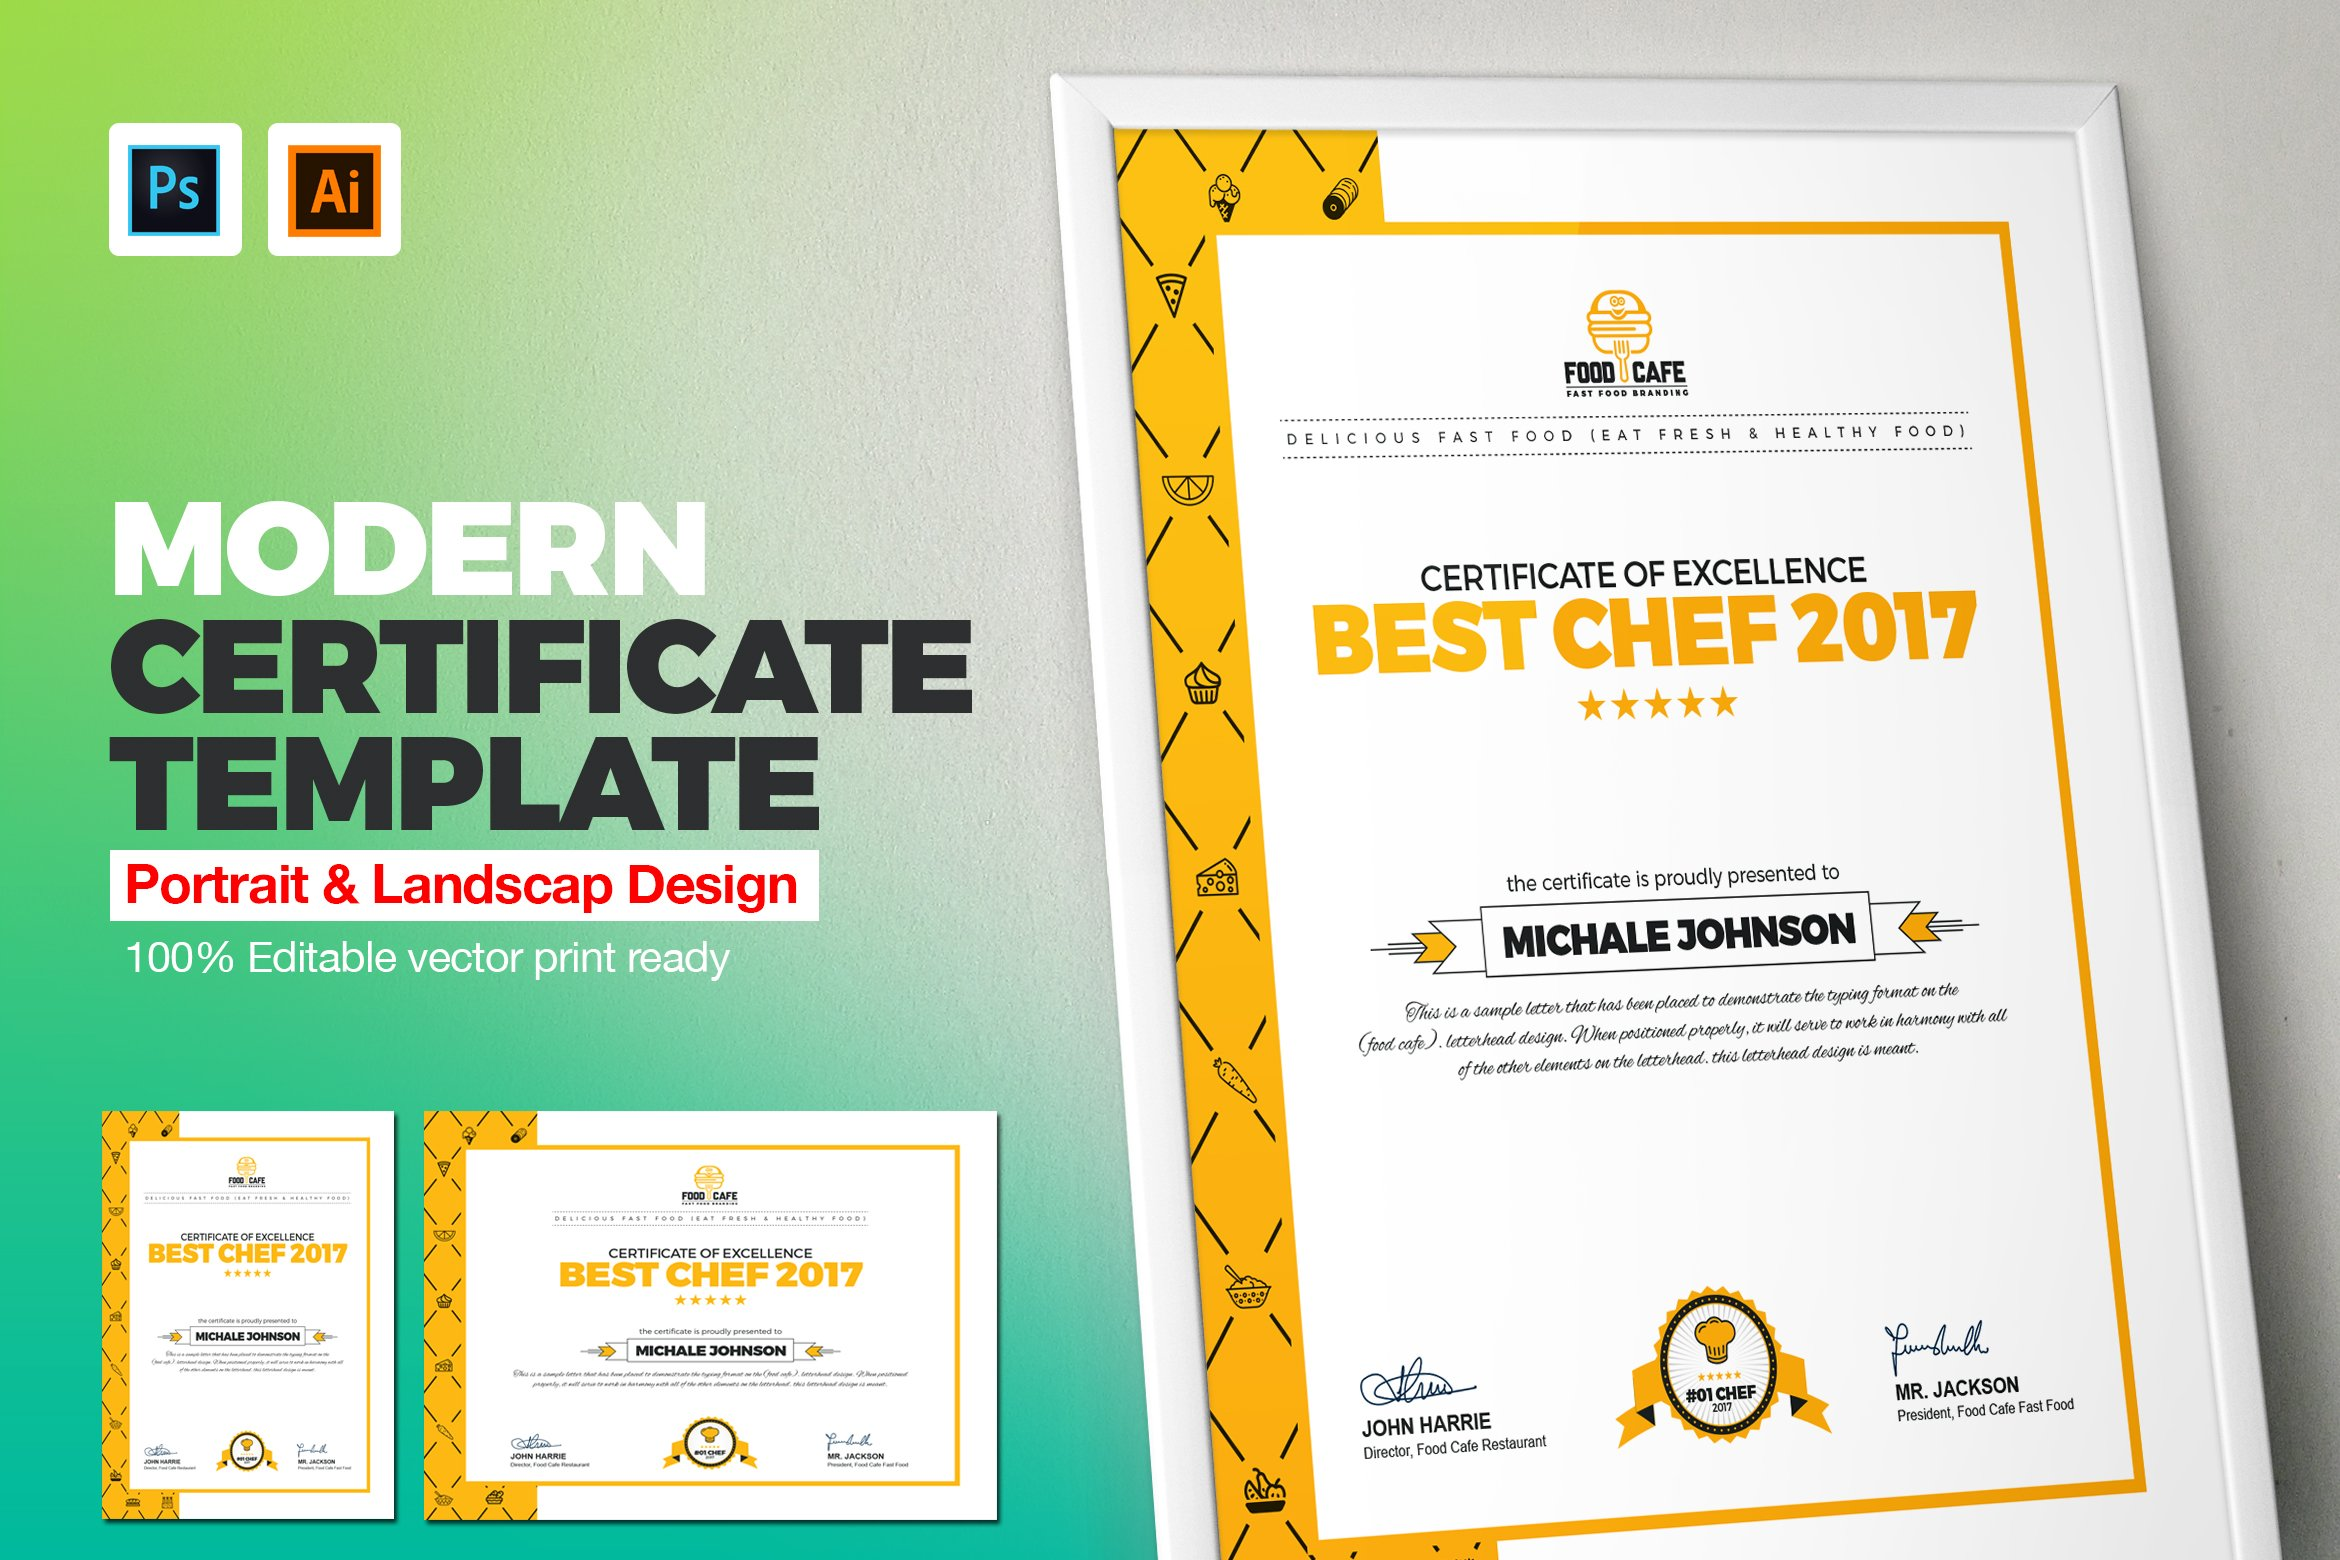 Modern certificate template stationery templates creative market 1betcityfo Gallery